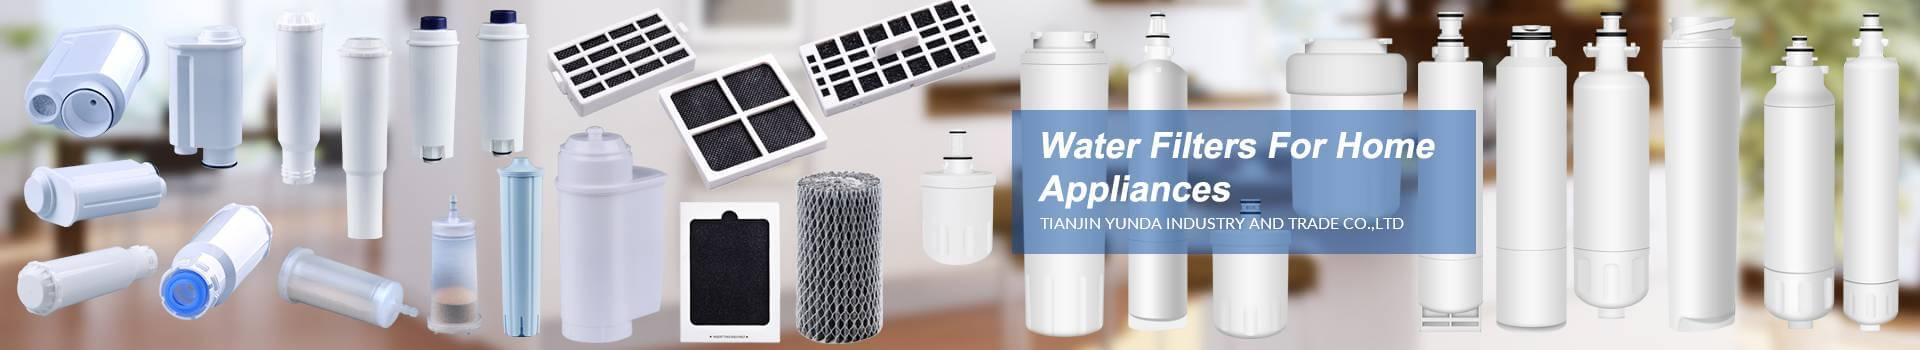 Auto-Coffee Machine Water Filters